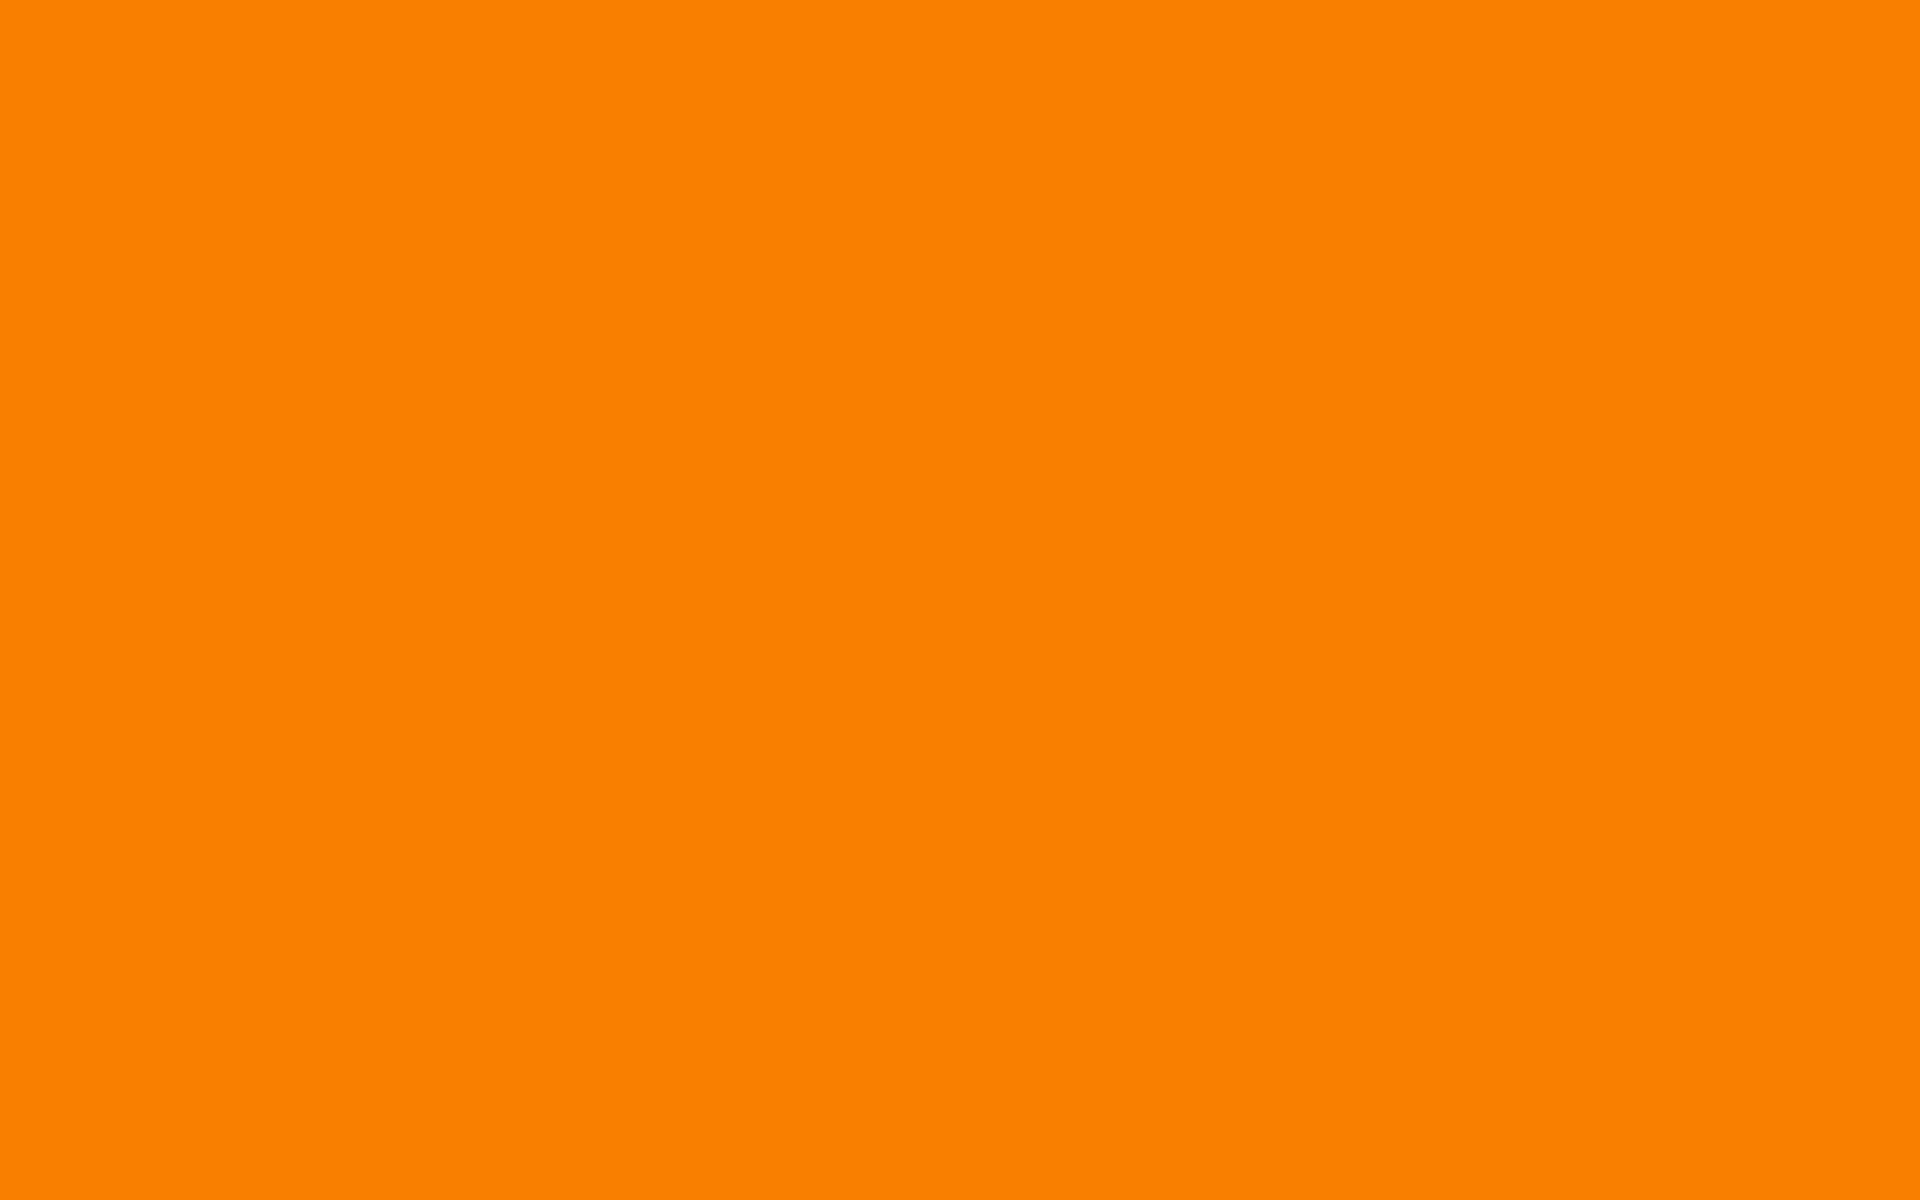 1920x1200 University Of Tennessee Orange Solid Color Background